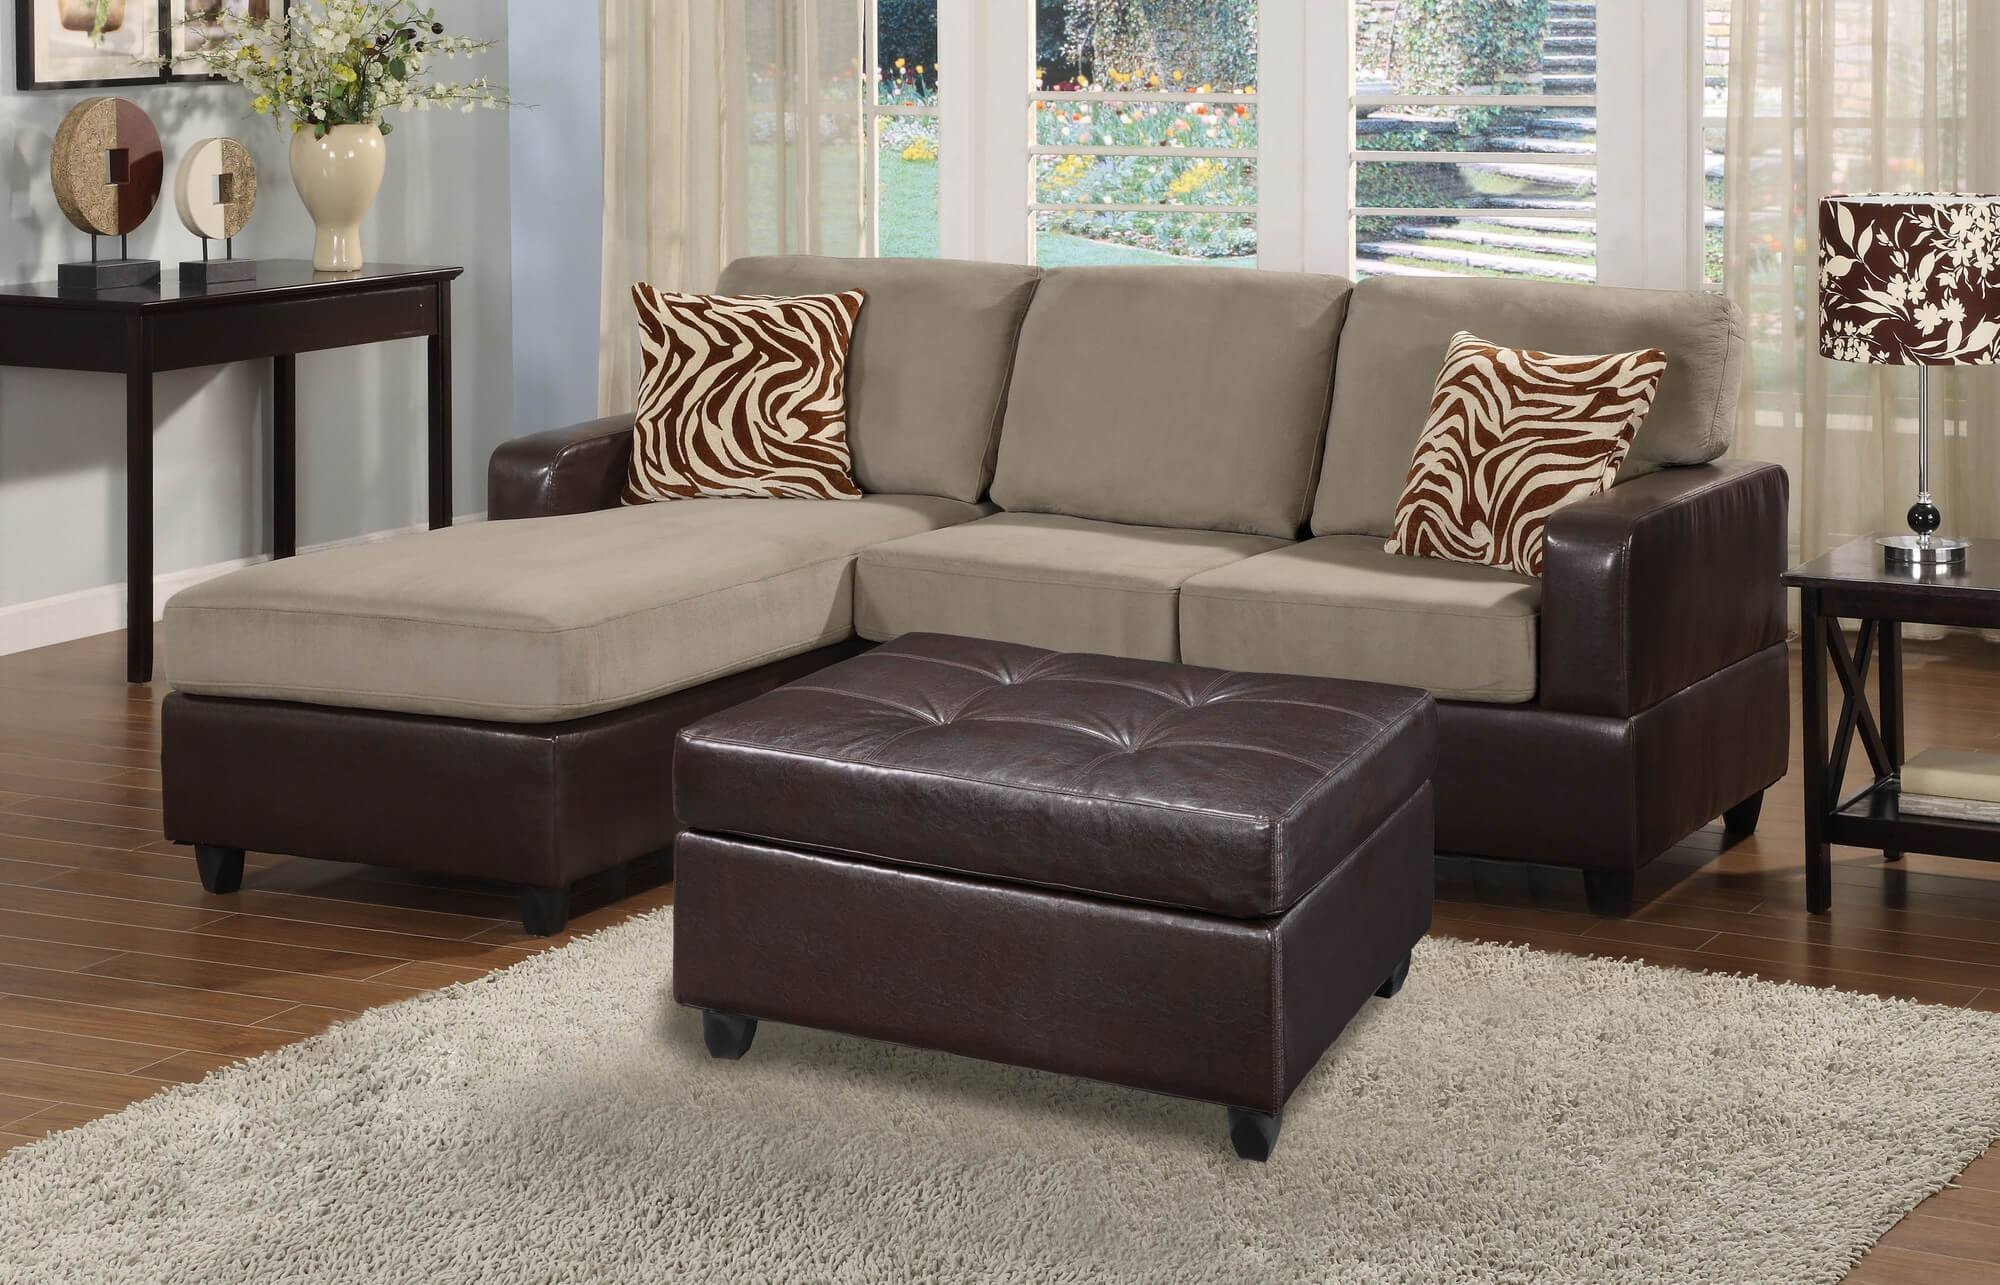 100 Beautiful Sectional Sofas Under $1,000 for Comfy Sectional Sofa (Image 1 of 30)